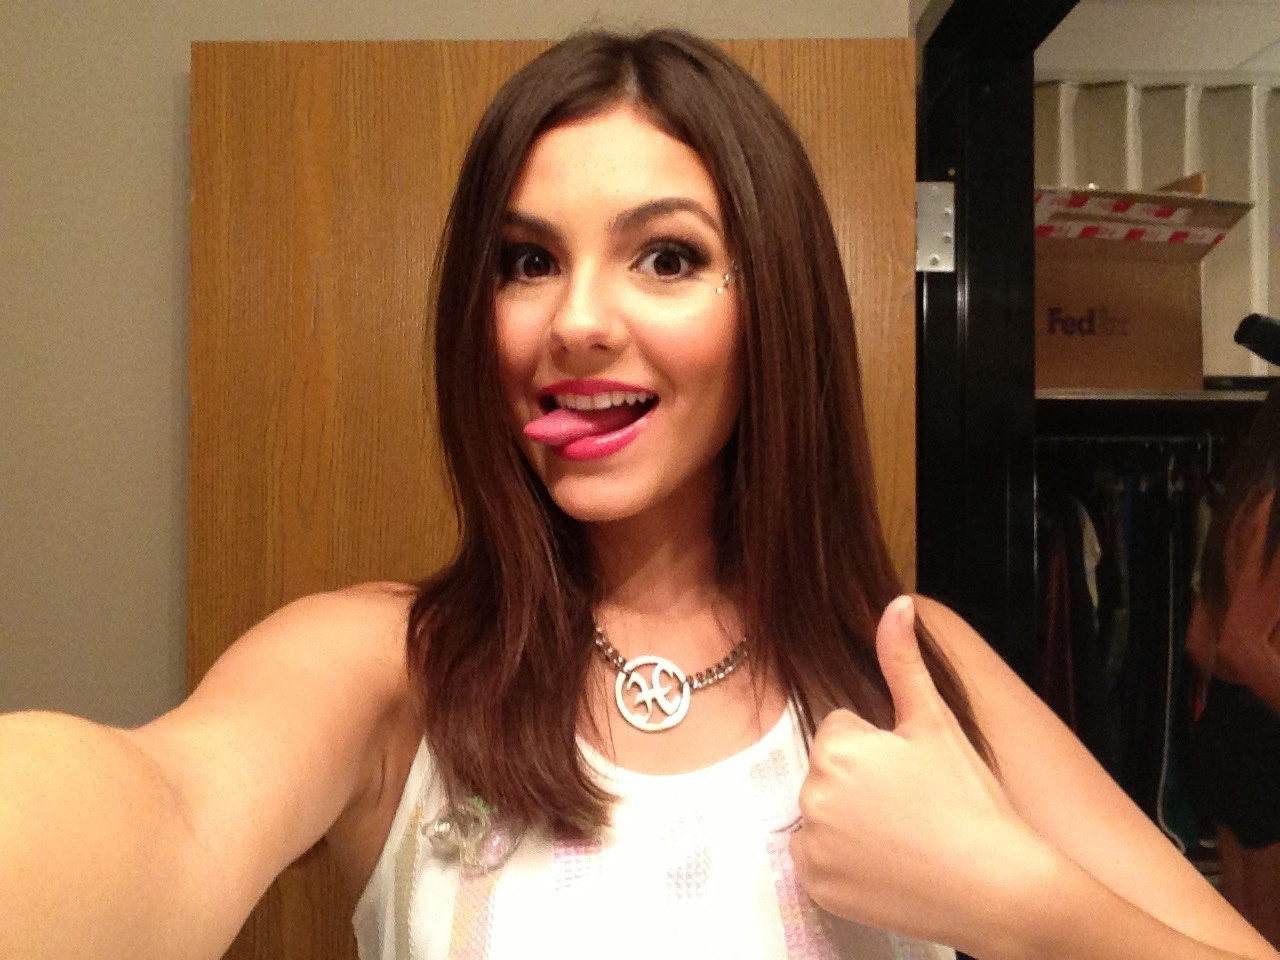 Victoria-Justice-Naked-008a23470e81a04ee6a.jpg